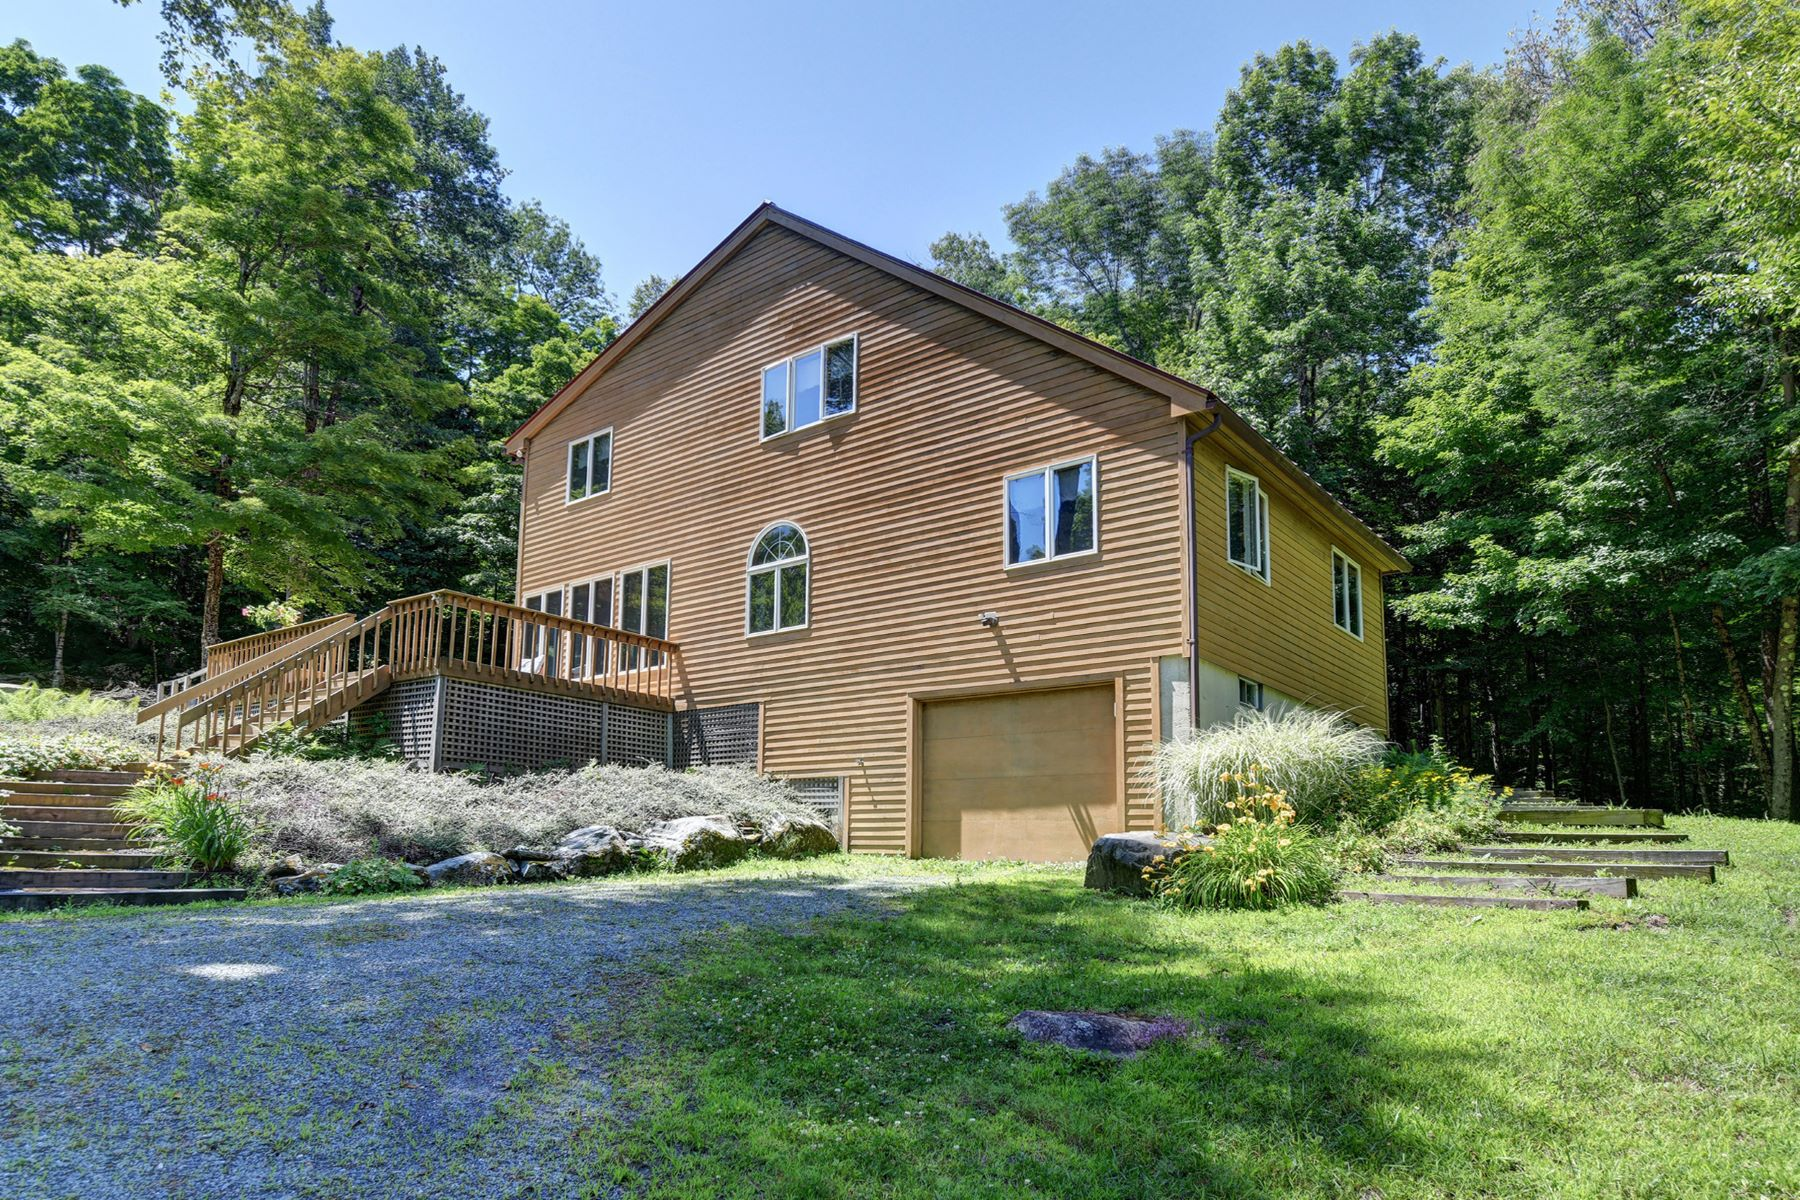 Single Family Homes για την Πώληση στο Spacious, Private and Perfectly Sited Country Home! 99 Jacobs Hollow Rd, Becket, Μασαχουσετη 01223 Ηνωμένες Πολιτείες